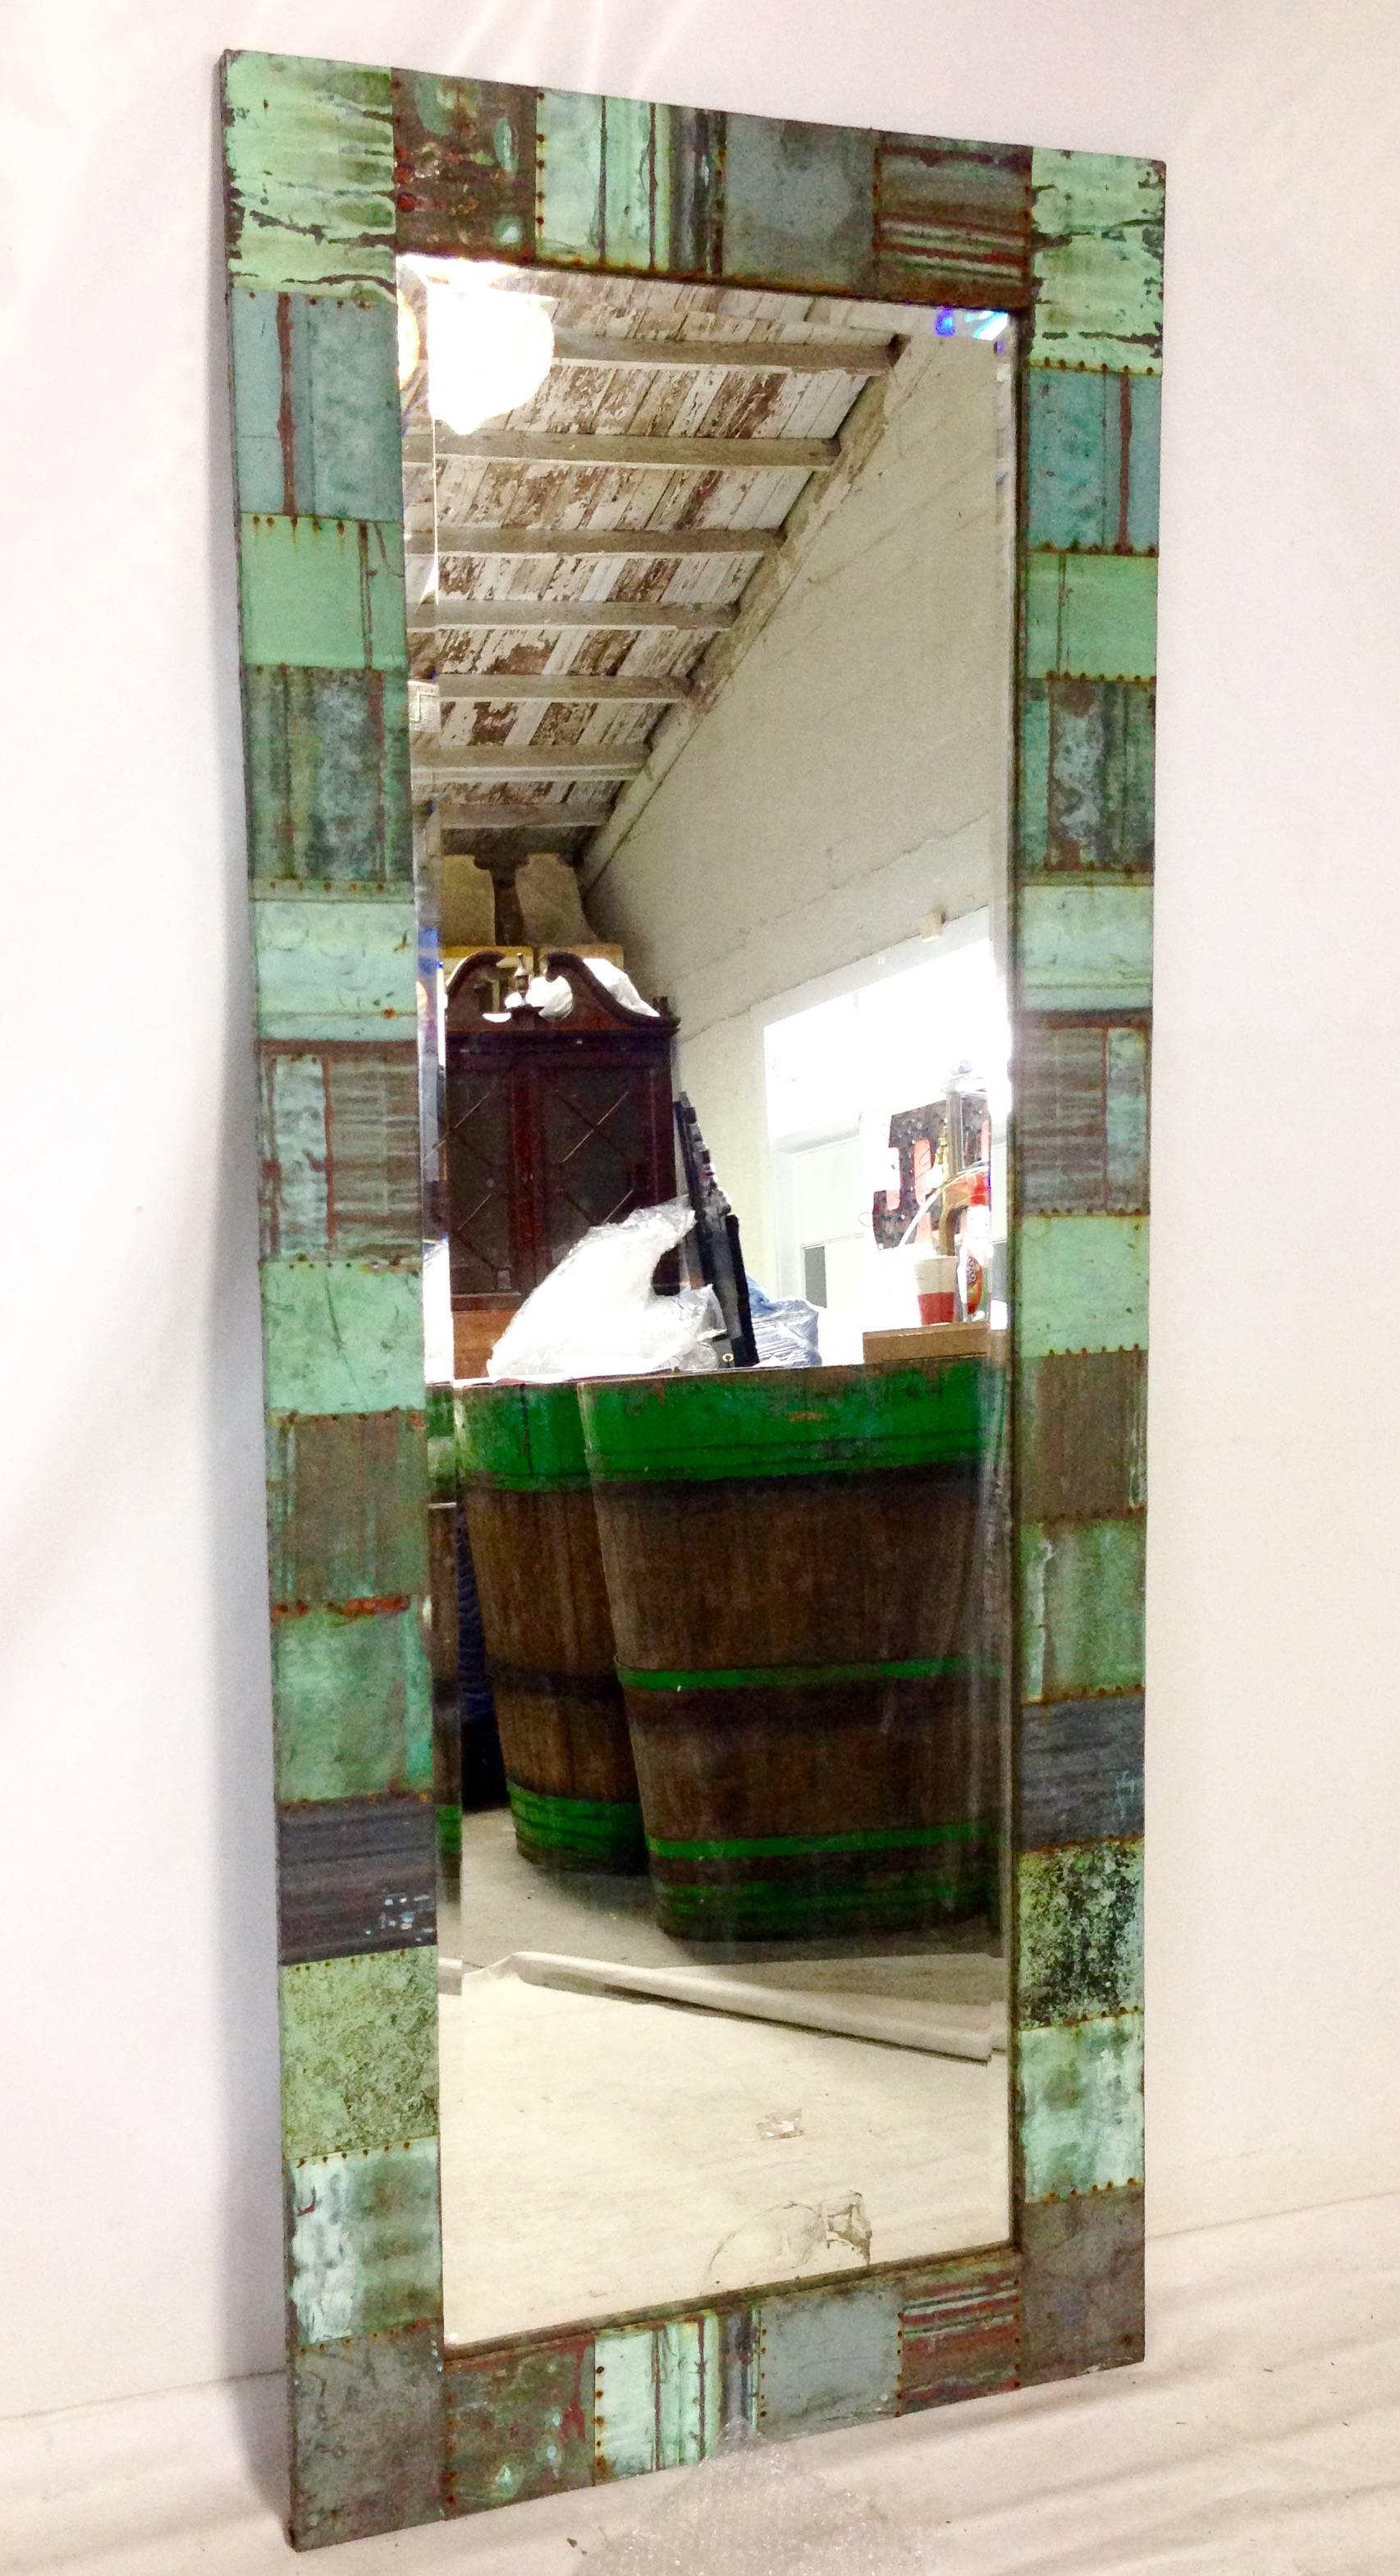 Antique Copper Roof Tile Patchwork Full Length Mirror For Sale at ...